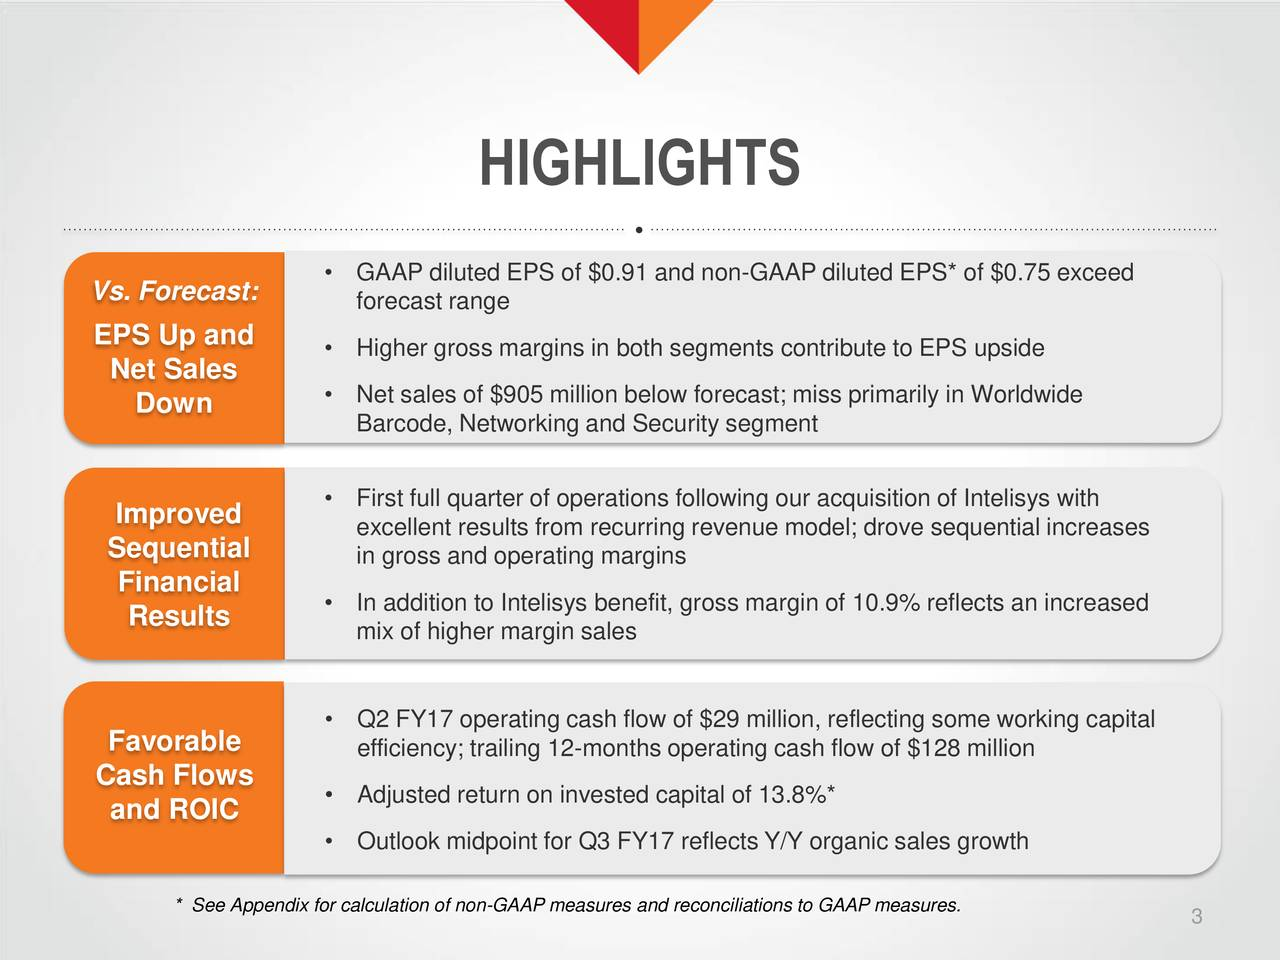 GAAP diluted EPS of $0.91 and non-GAAP diluted EPS* of $0.75 exceed Vs. Forecast: forecast range EPS Up and  Higher gross margins in both segments contribute to EPS upside Net Sales Down  Net sales of $905 million below forecast; miss primarily in Worldwide Barcode, Networking and Security segment First full quarter of operations following our acquisition of Intelisys with Improved excellent results from recurring revenue model; drove sequential increases Sequential in gross and operating margins Financial In addition to Intelisys benefit, gross margin of 10.9% reflects an increased Results mix of higher margin sales Q2 FY17 operating cash flow of $29 million, reflecting some working capital Favorable efficiency; trailing 12-months operating cash flow of $128 million Cash Flows and ROIC  Adjusted return on invested capital of 13.8%* Outlook midpoint for Q3 FY17 reflects Y/Y organic sales growth * See Appendix for calculation of non-GAAP measures and reconciliations to GAAP measures. 3